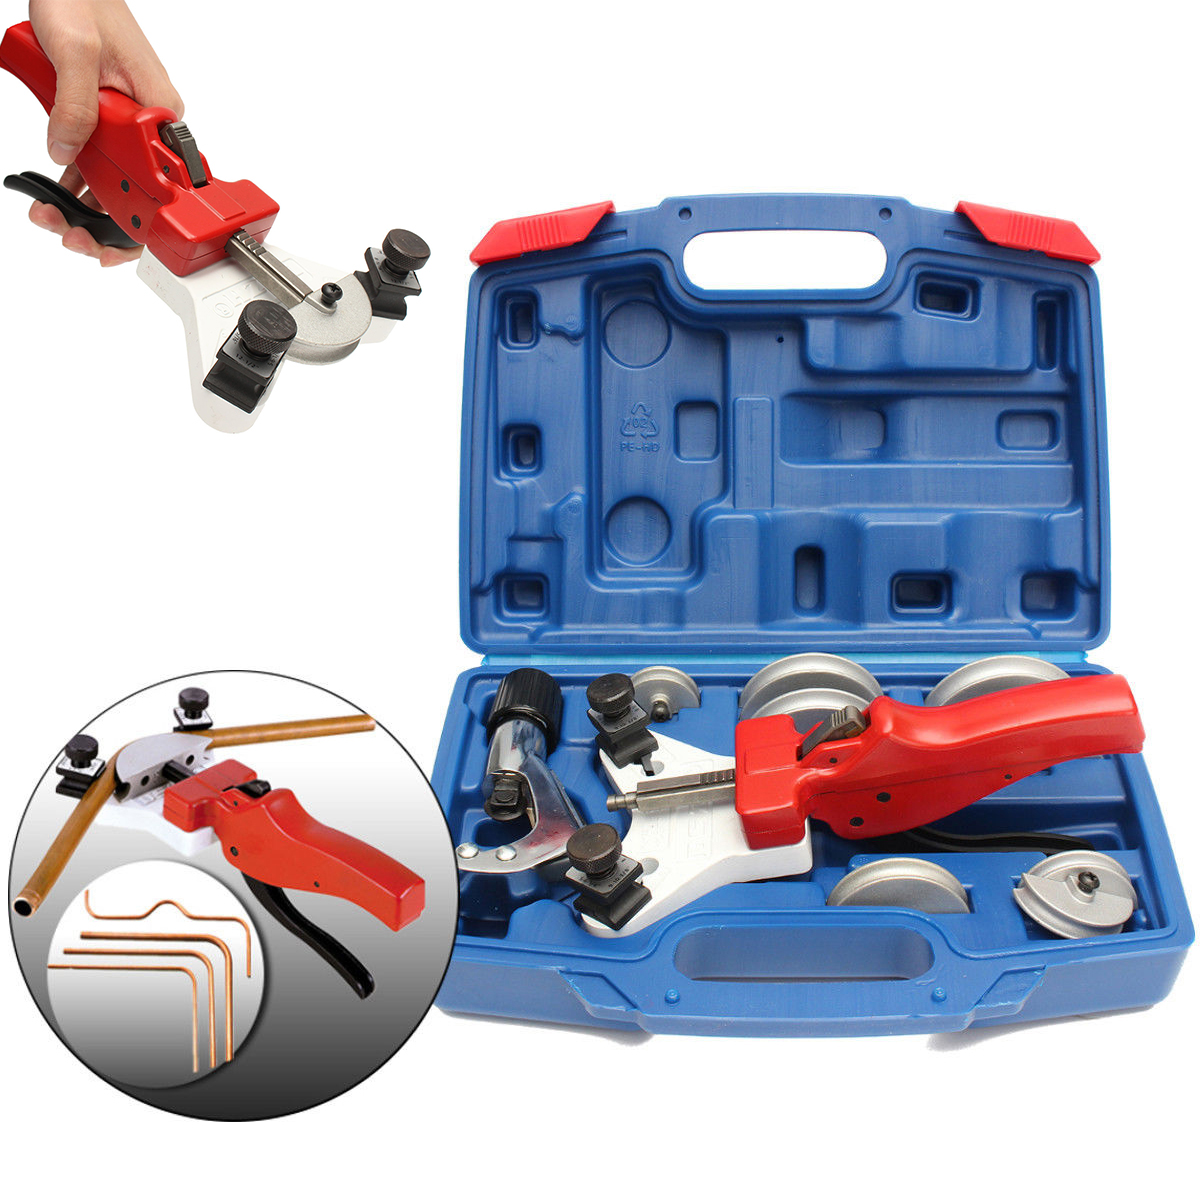 1 Set Heavy Duty Tube Bender Manual Steel Copper Pipe Bending Tool with Tube Cutter 5-12mm Mayitr